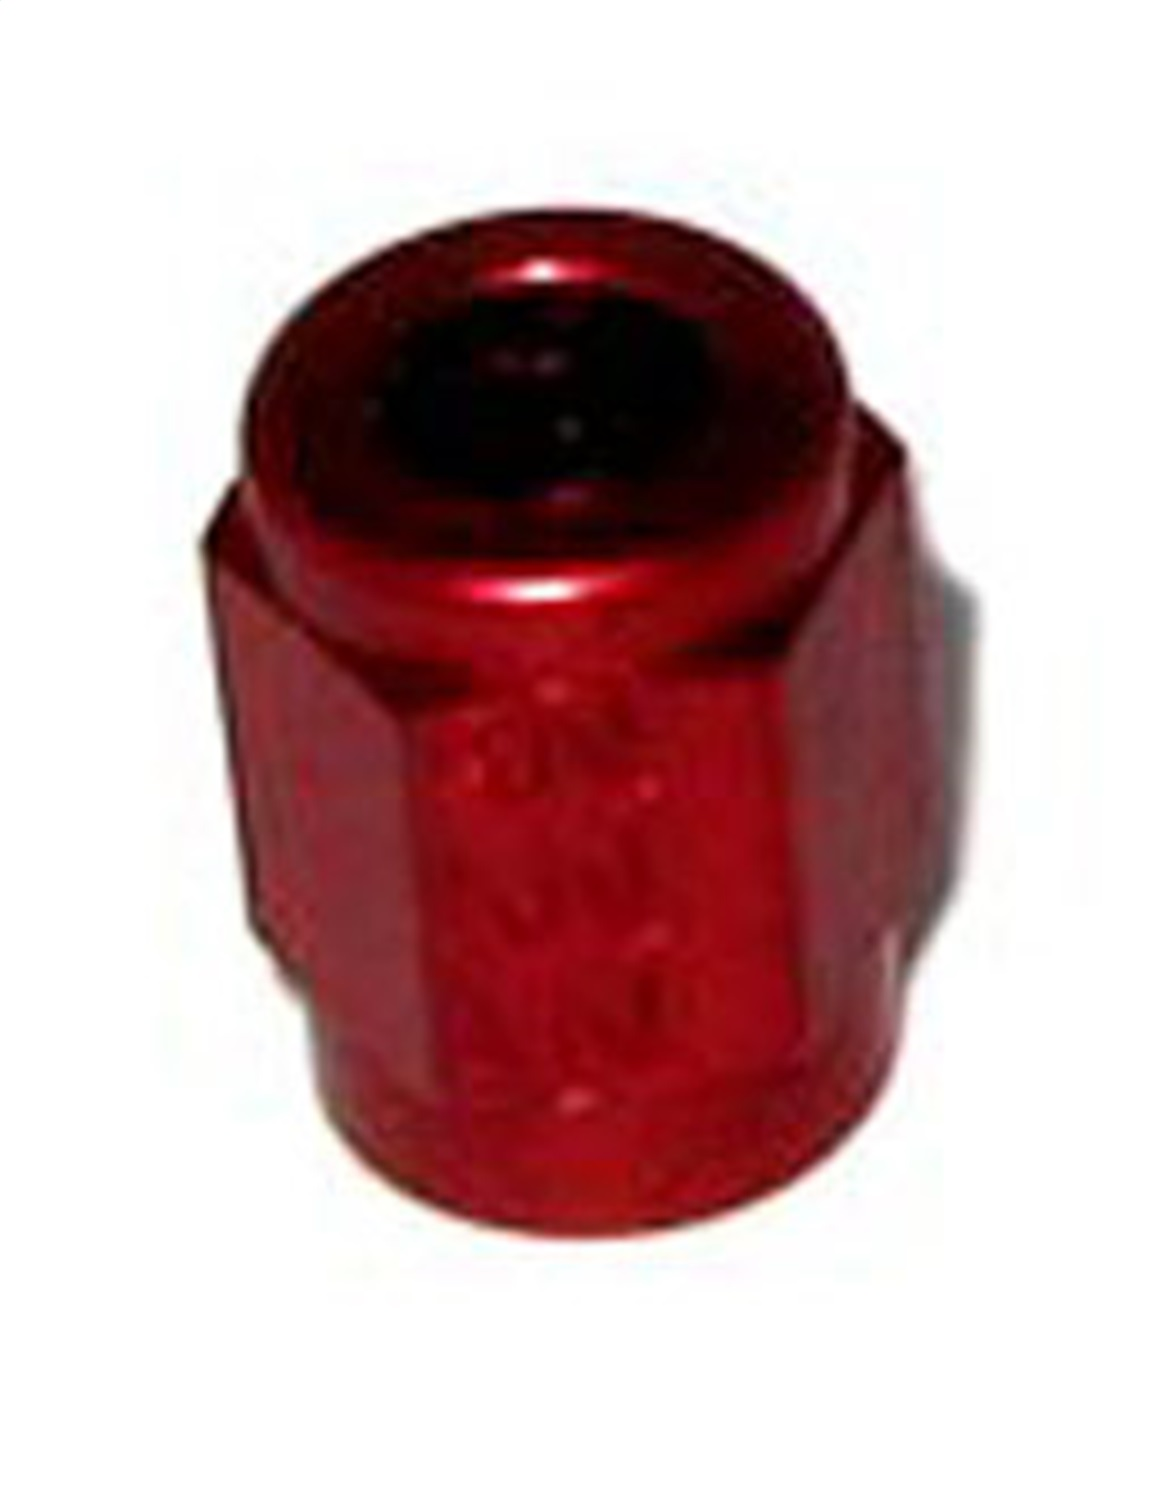 NOS 17551NOS Pipe Fitting Tube Nut